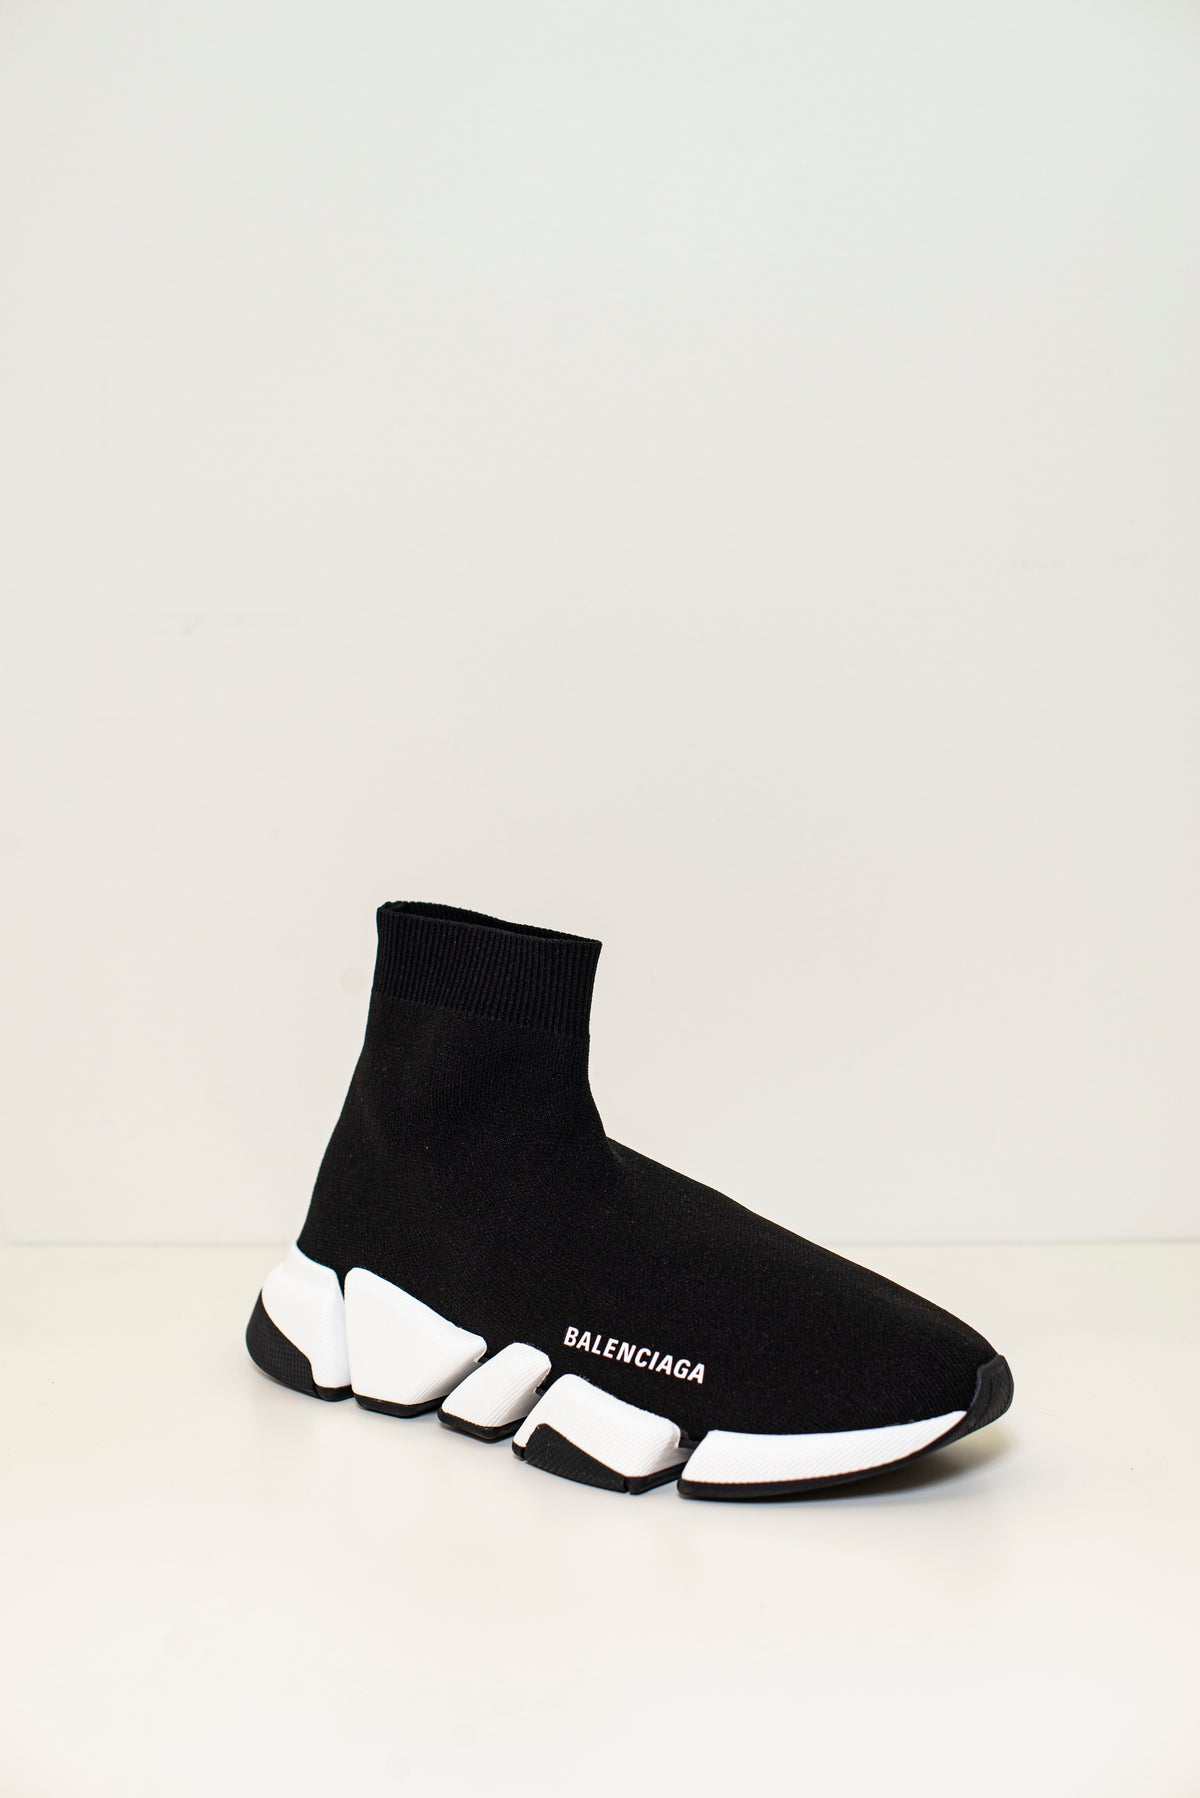 BALENCIAGA - SPEED 2.0 LT BICOLOR W | Black/White/Black